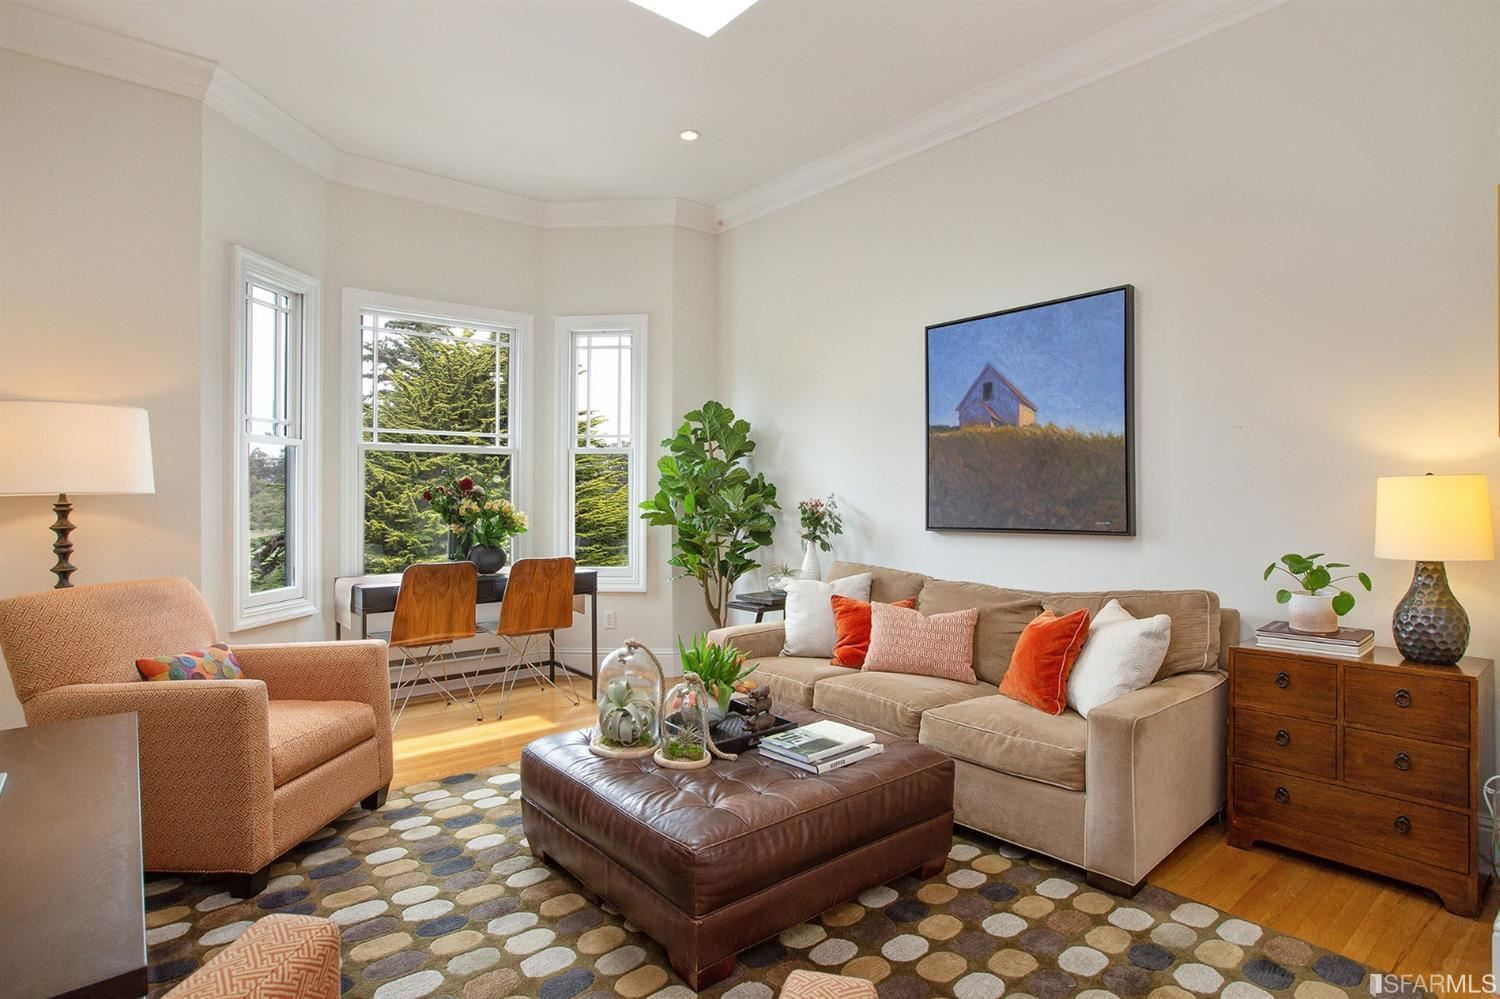 621 Lincoln Way #3, San Francisco, CA 94122 - #: 504221